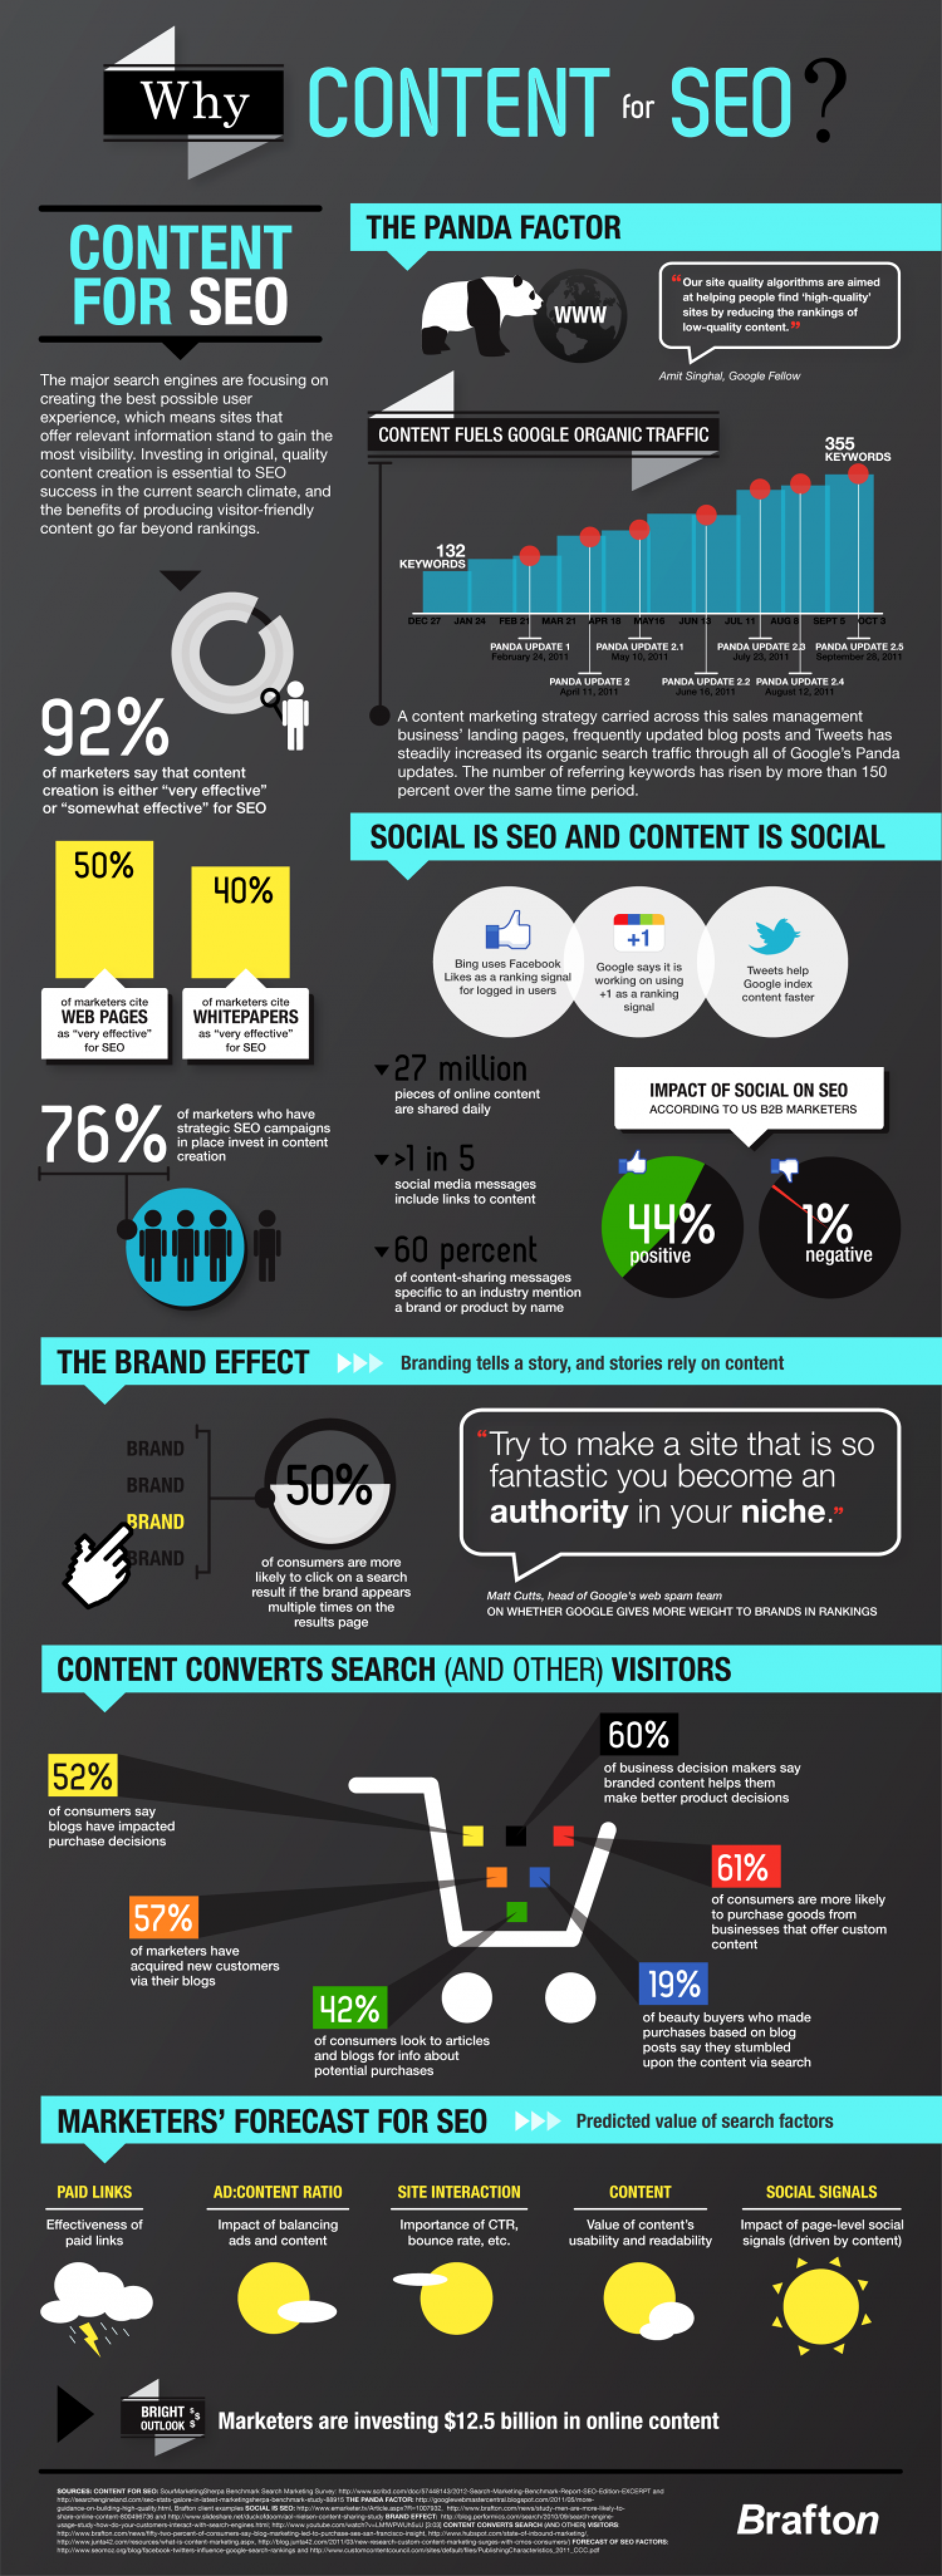 Why Content for SEO? Infographic